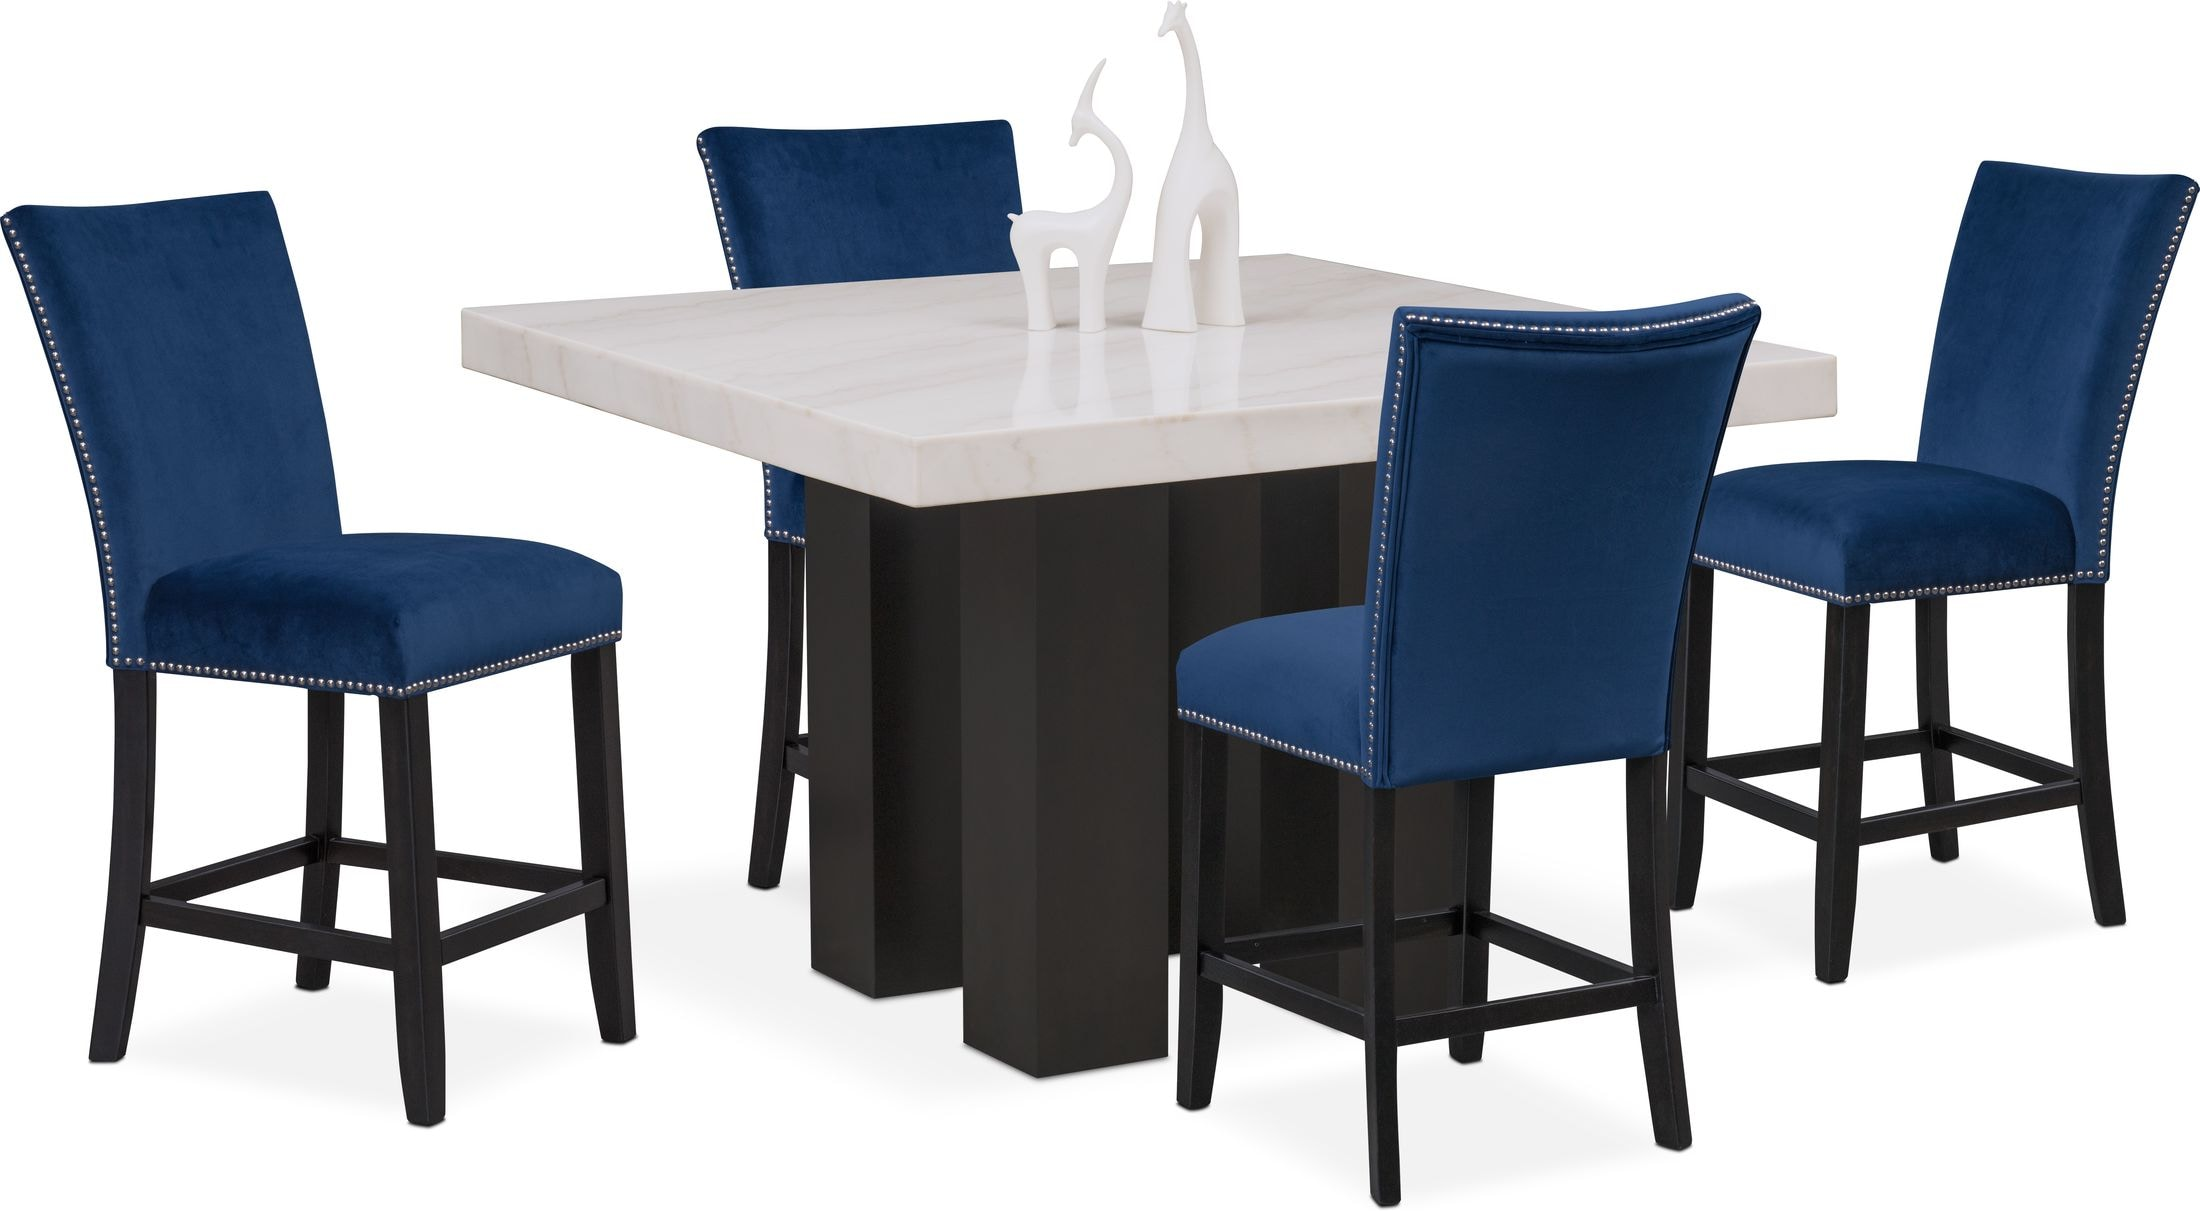 Artemis Counter Height Marble Dining Table And 4 Upholstered Stools Value City Furniture